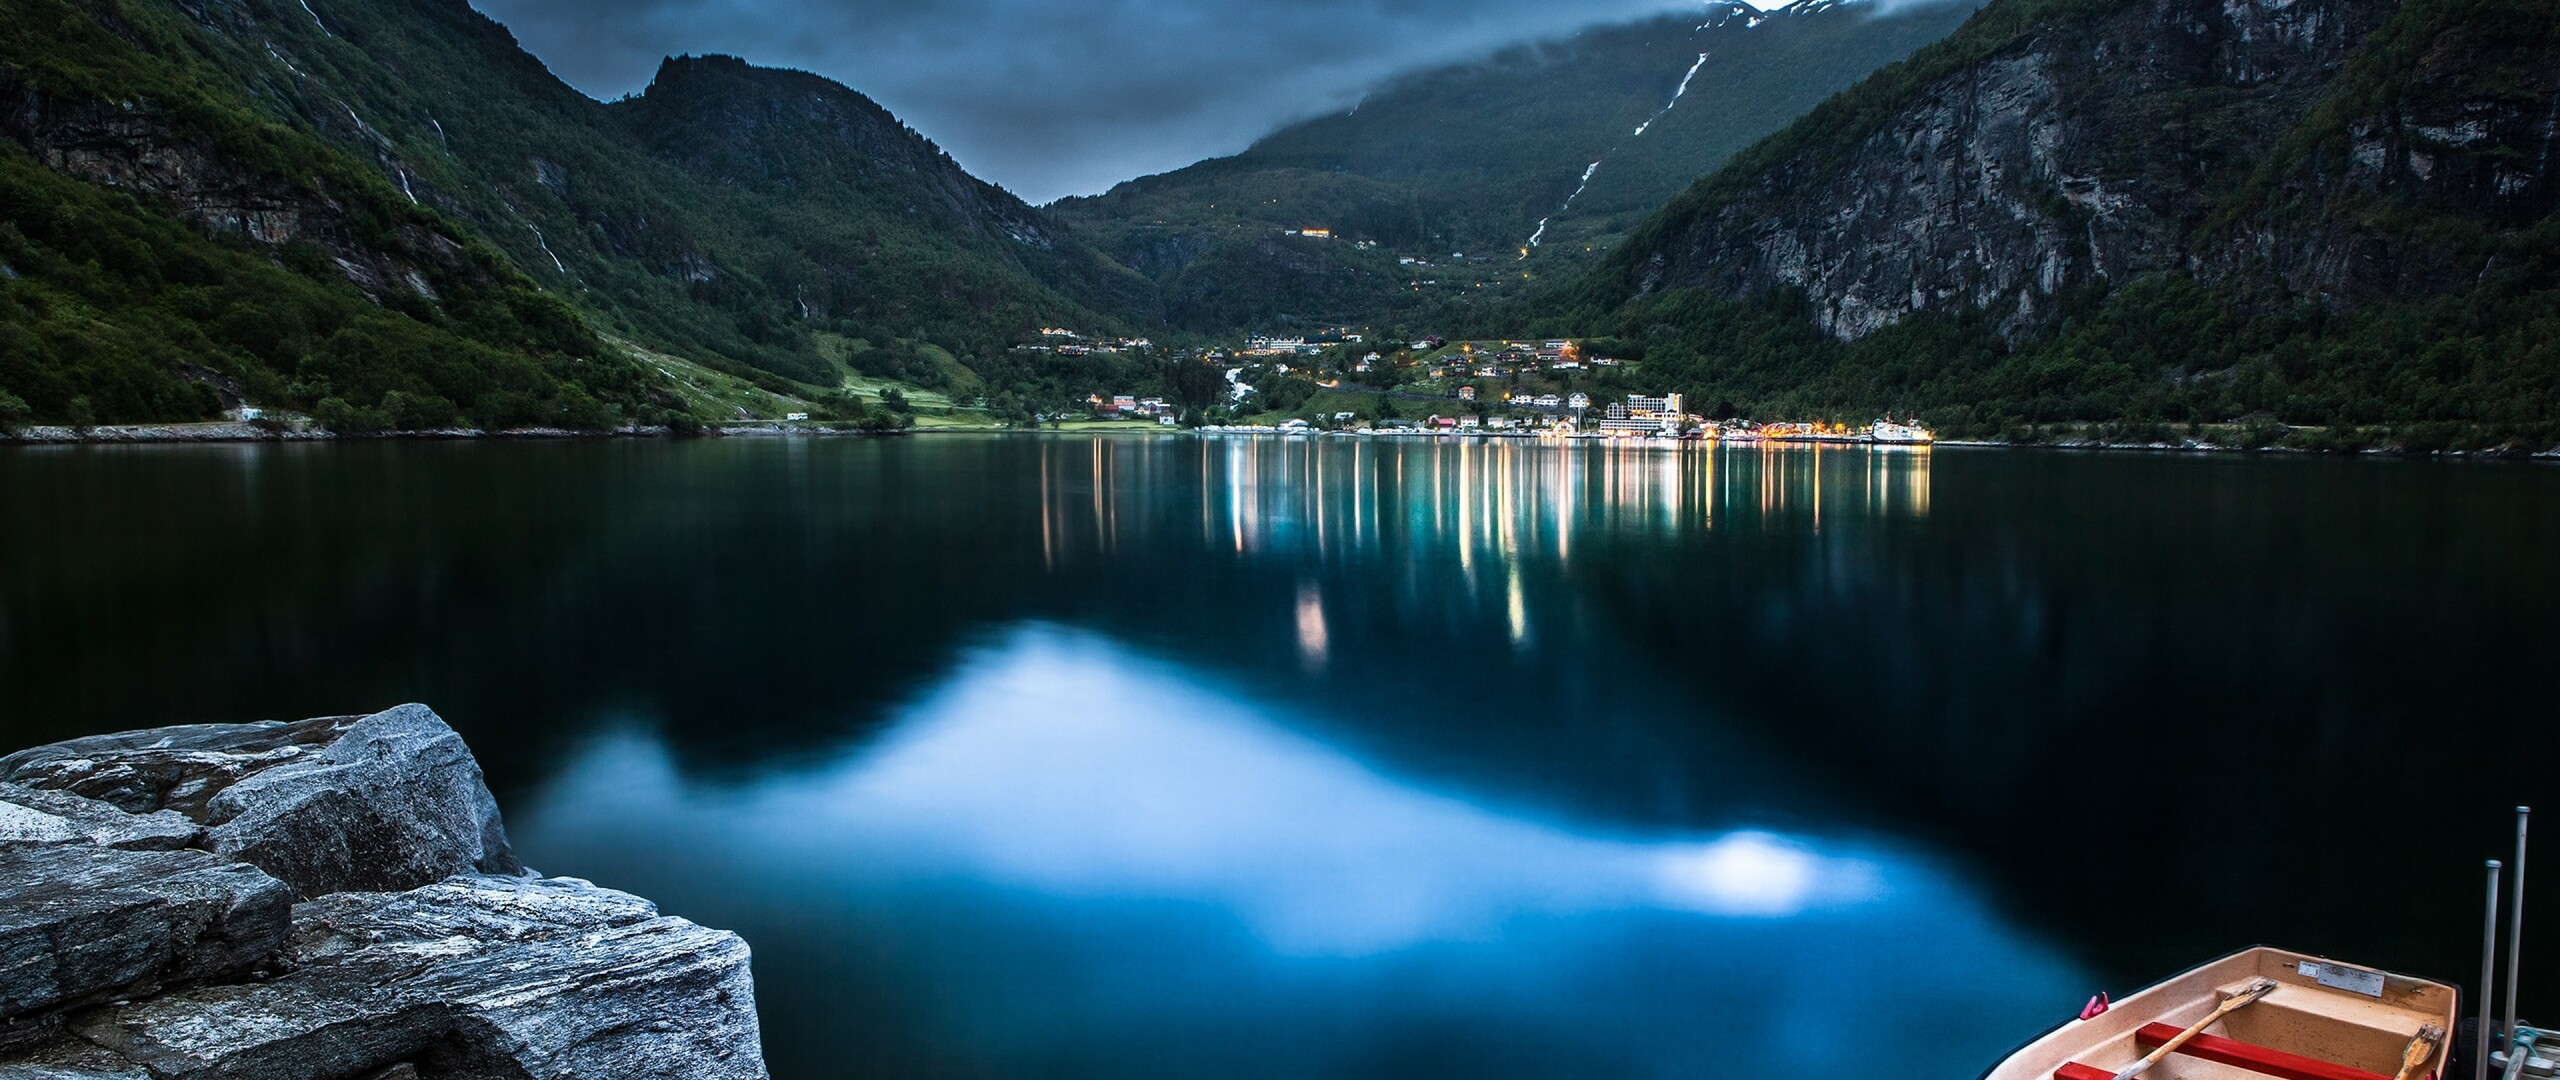 mountain-lake-beautiful-night.jpg